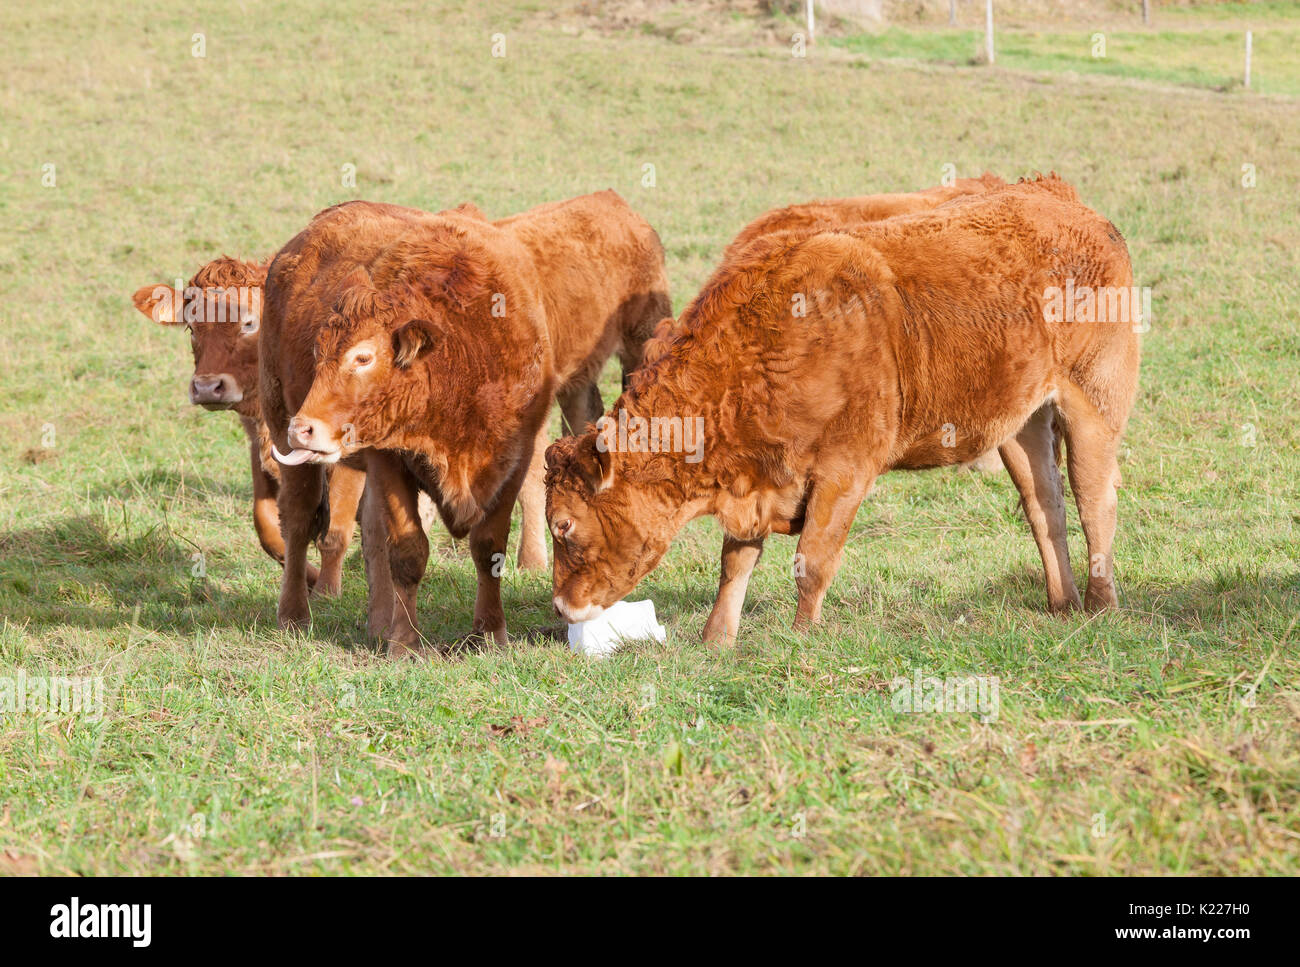 When do limousin cattle mature